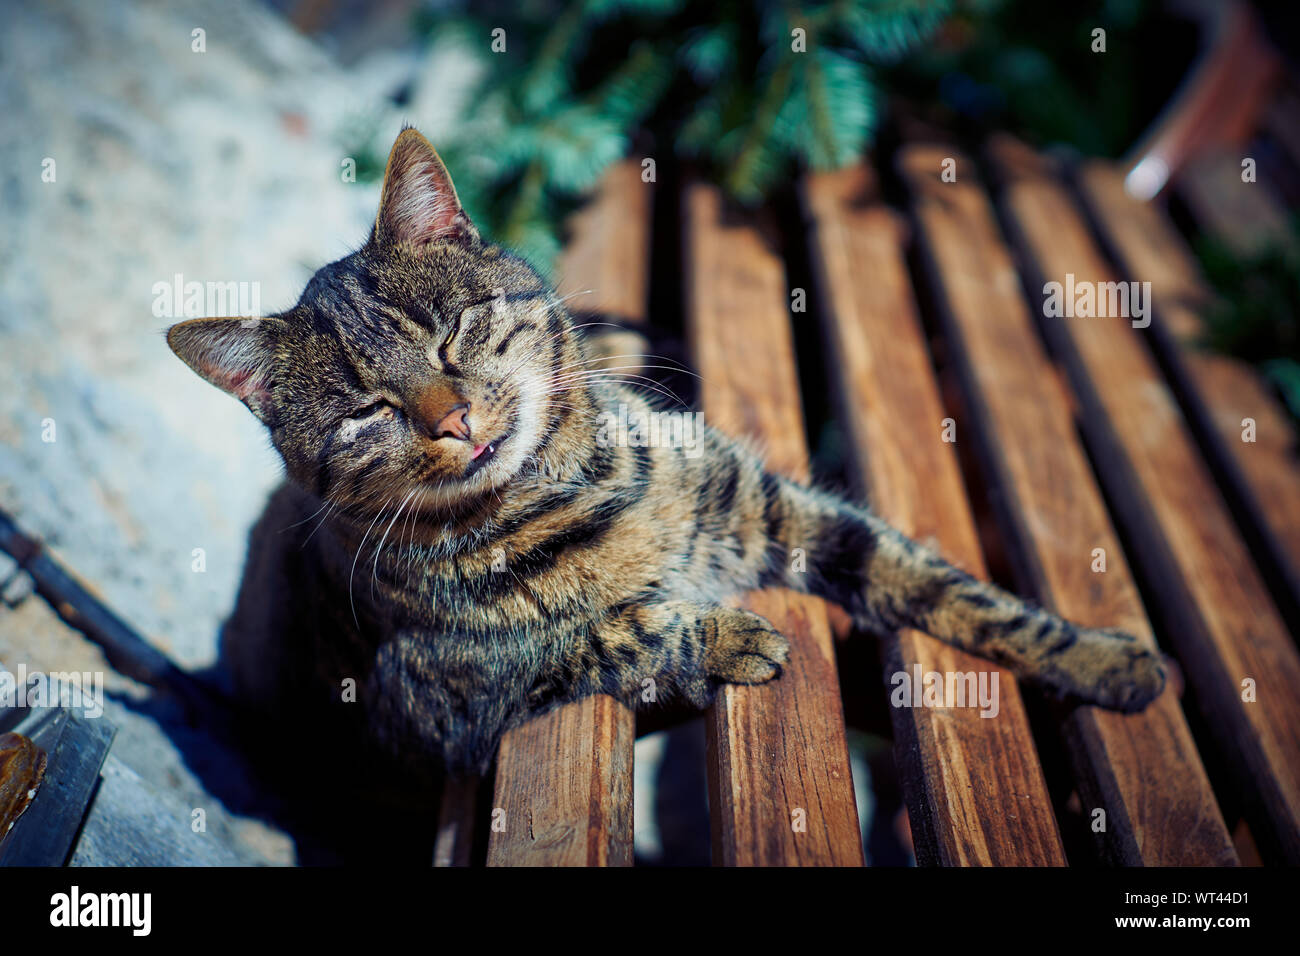 A gray cat sits on a bench Stock Photo